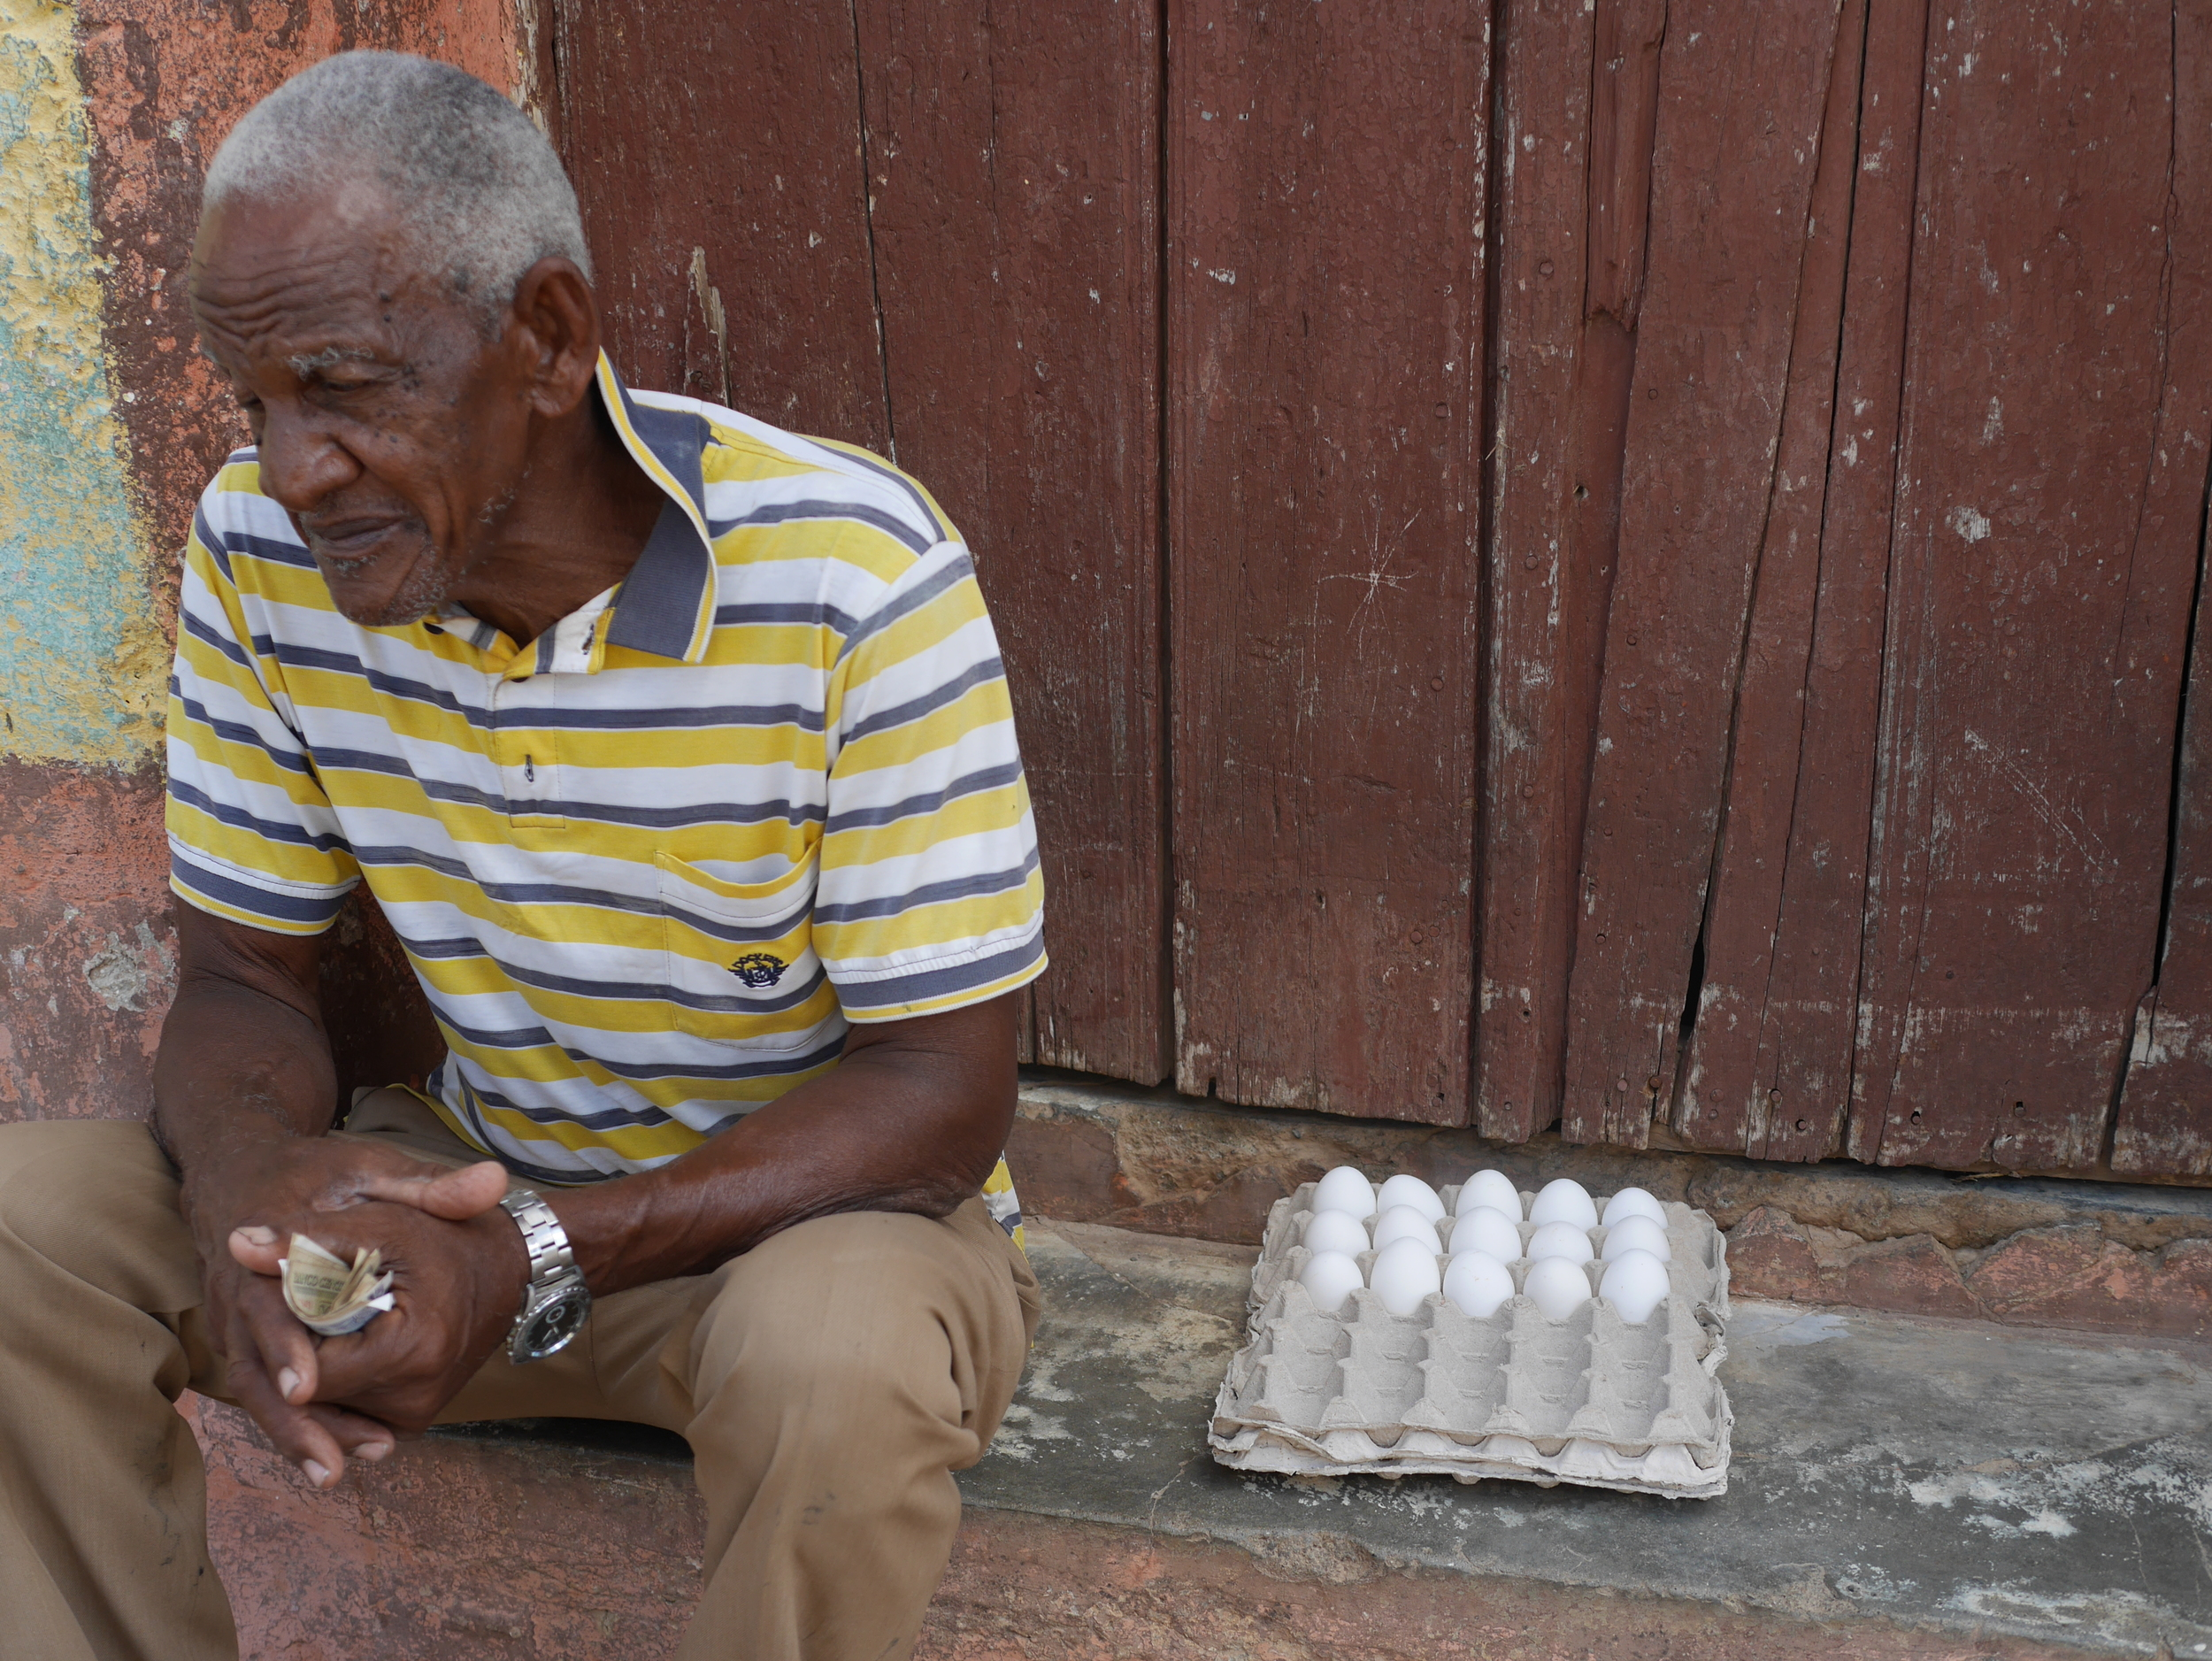 This is how you buy eggs in Cuba.